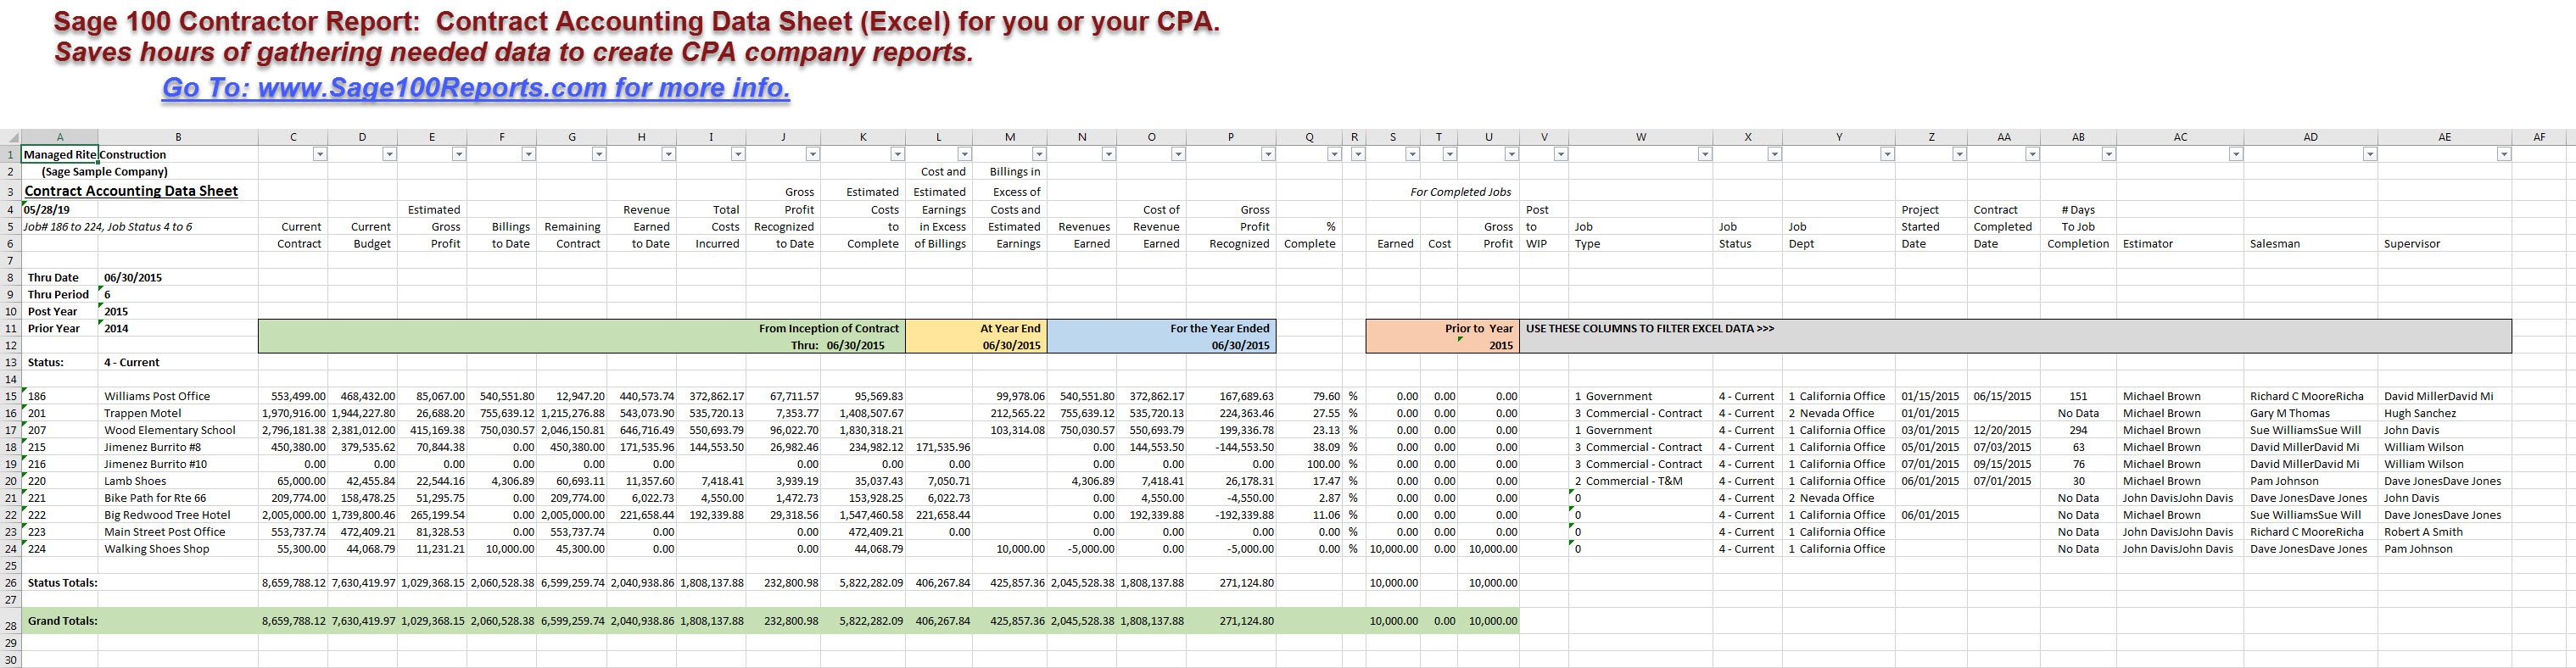 Contract Accounting Data Sheet